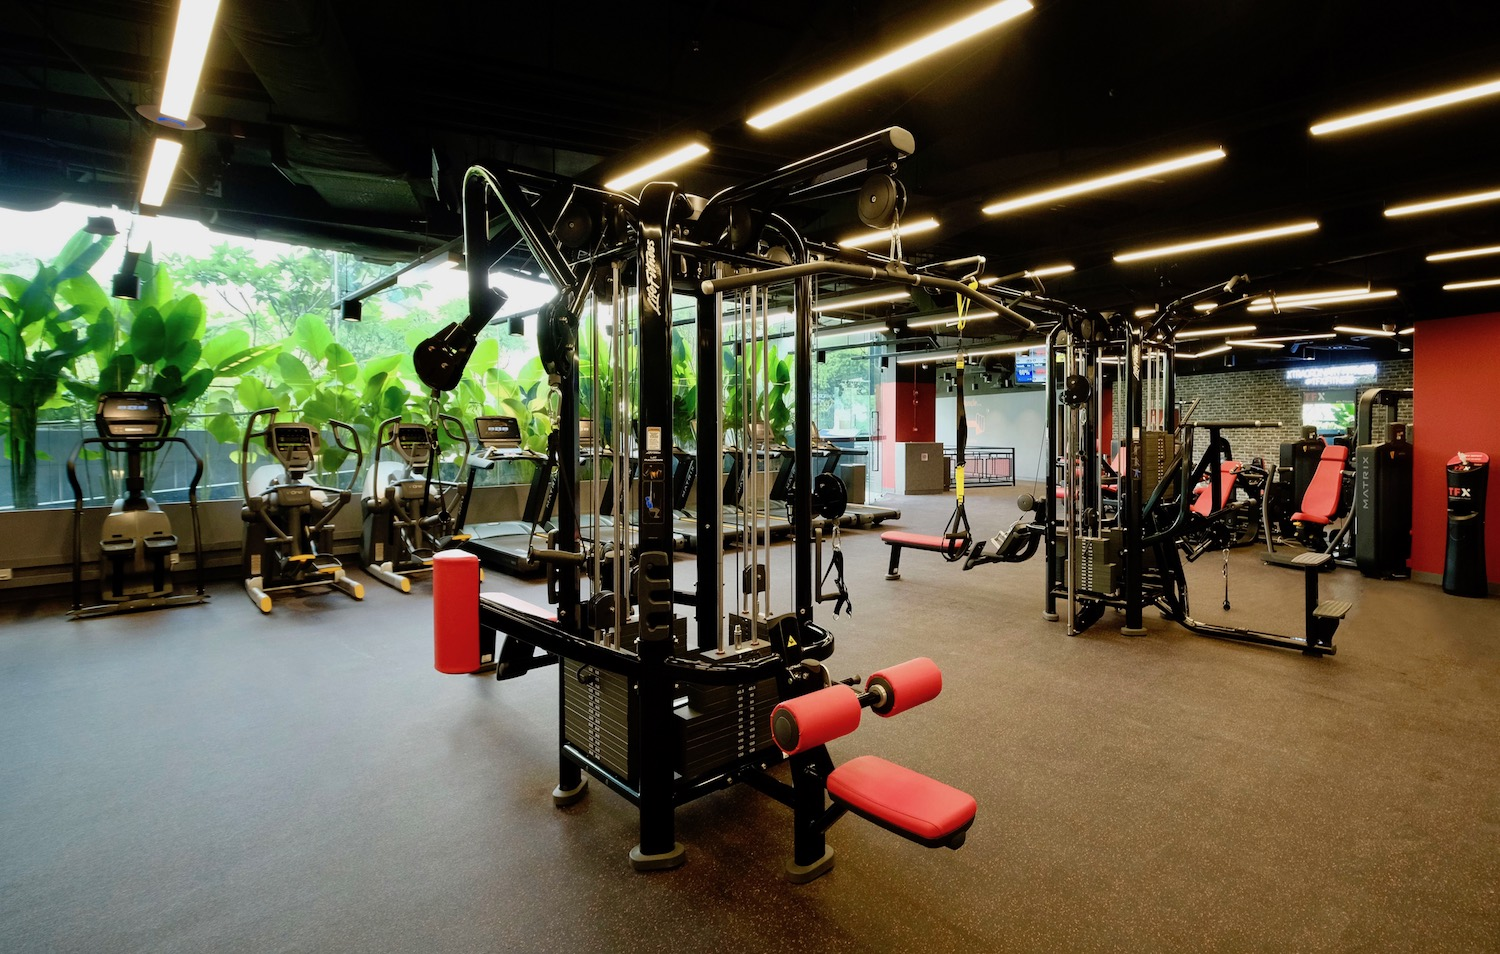 Review: TFX Funan's technology-enabled training will shake up your fitness routine